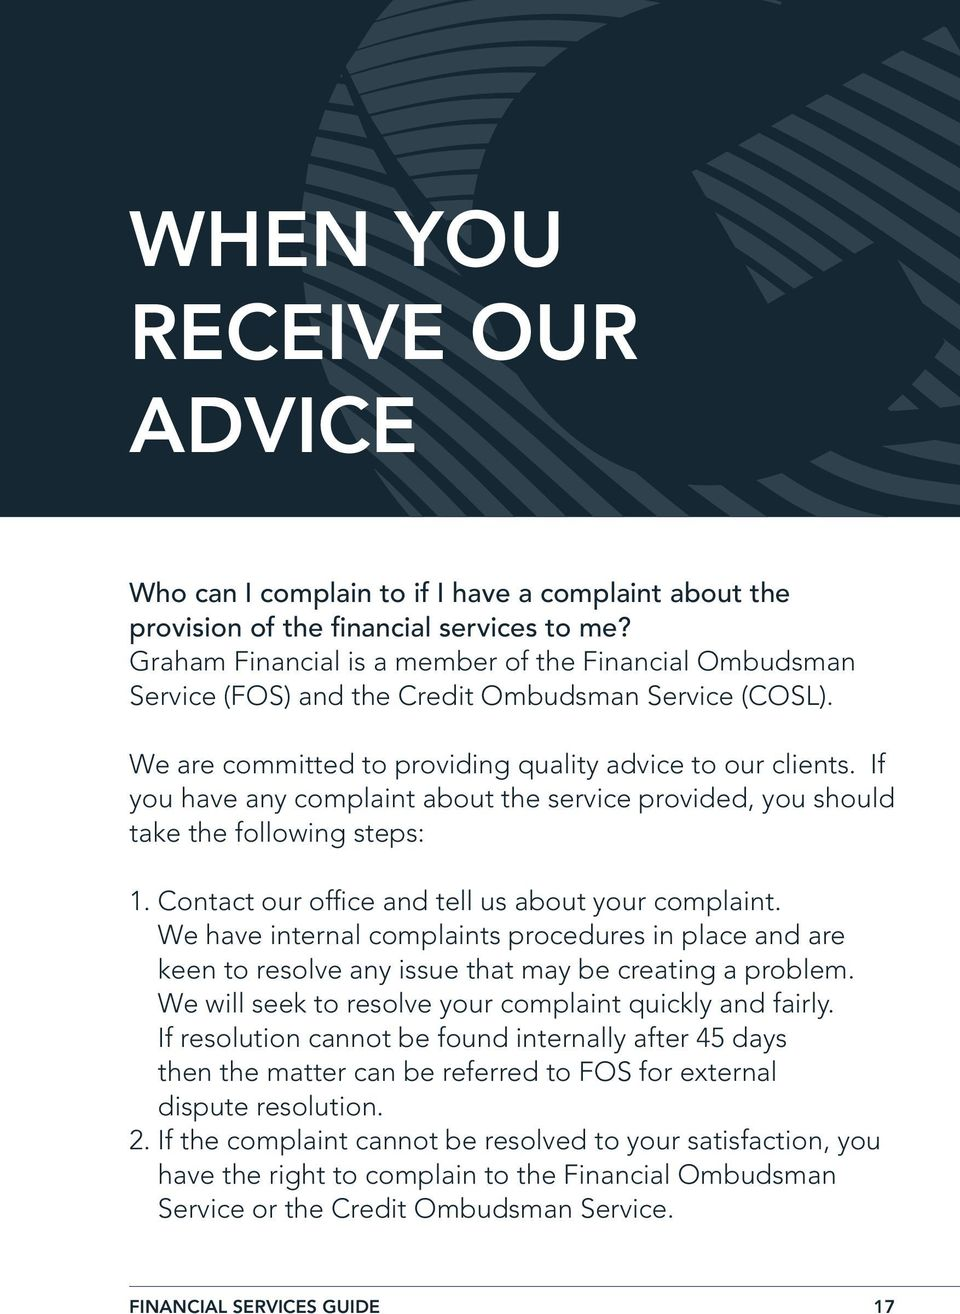 If you have any complaint about the service provided, you should take the following steps: 1. Contact our office and tell us about your complaint.